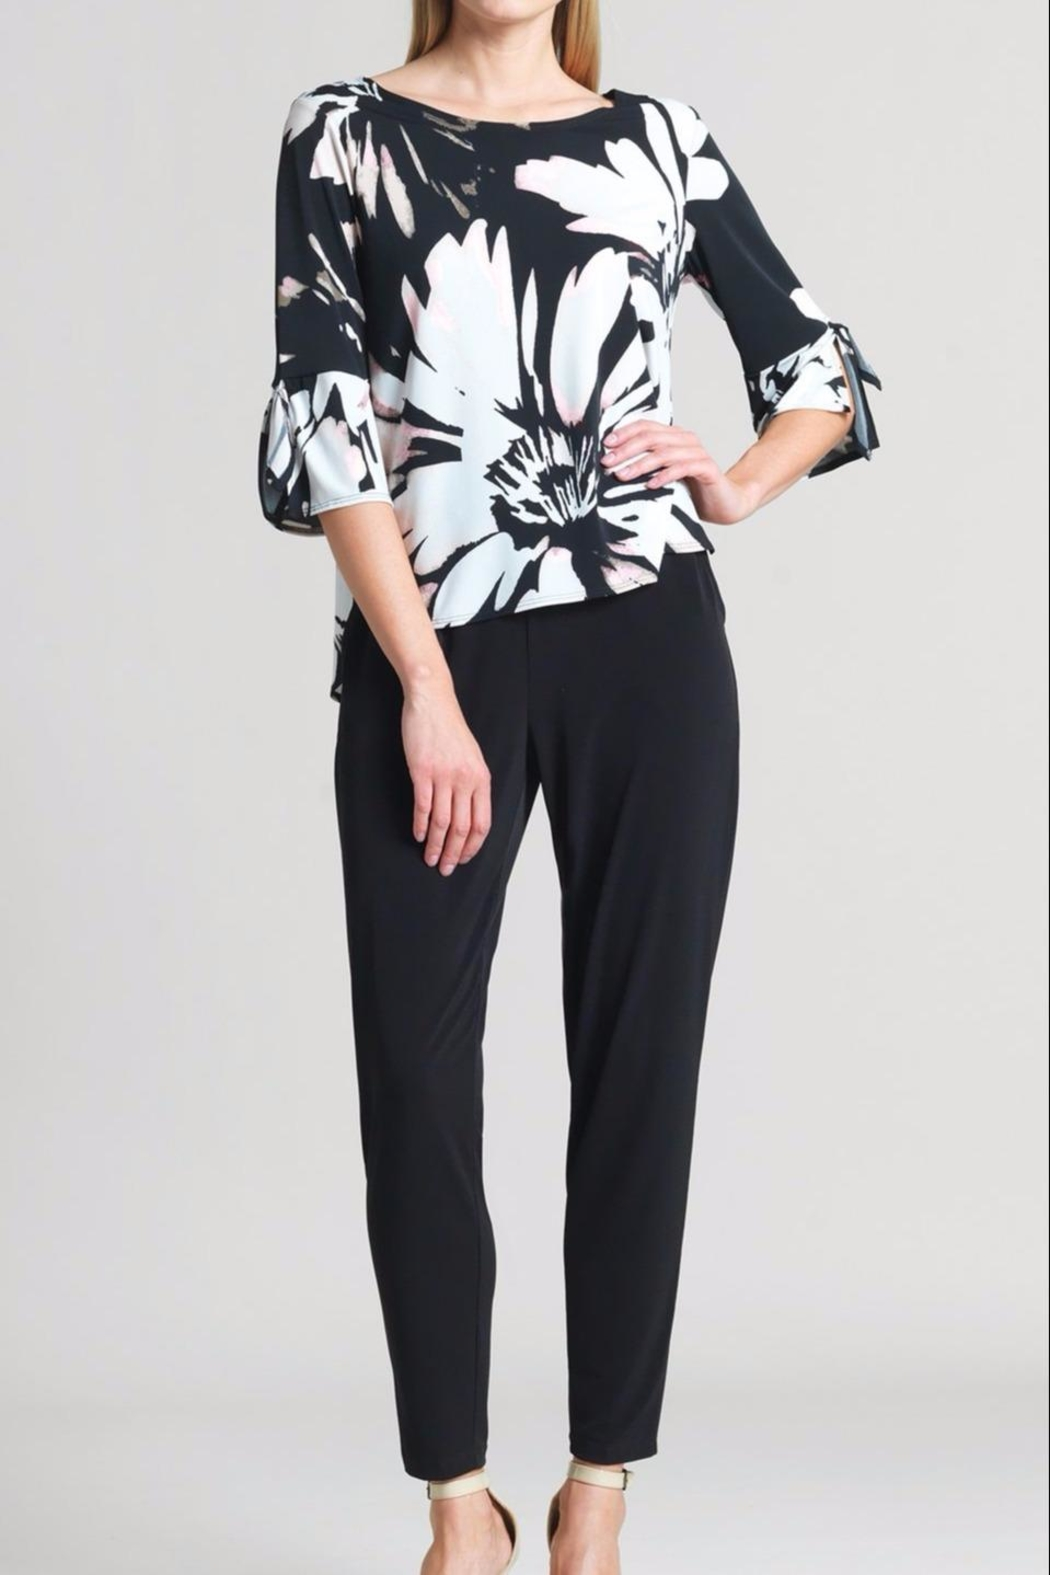 Clara Sunwoo Floral Top Cuff-Tie - Front Cropped Image